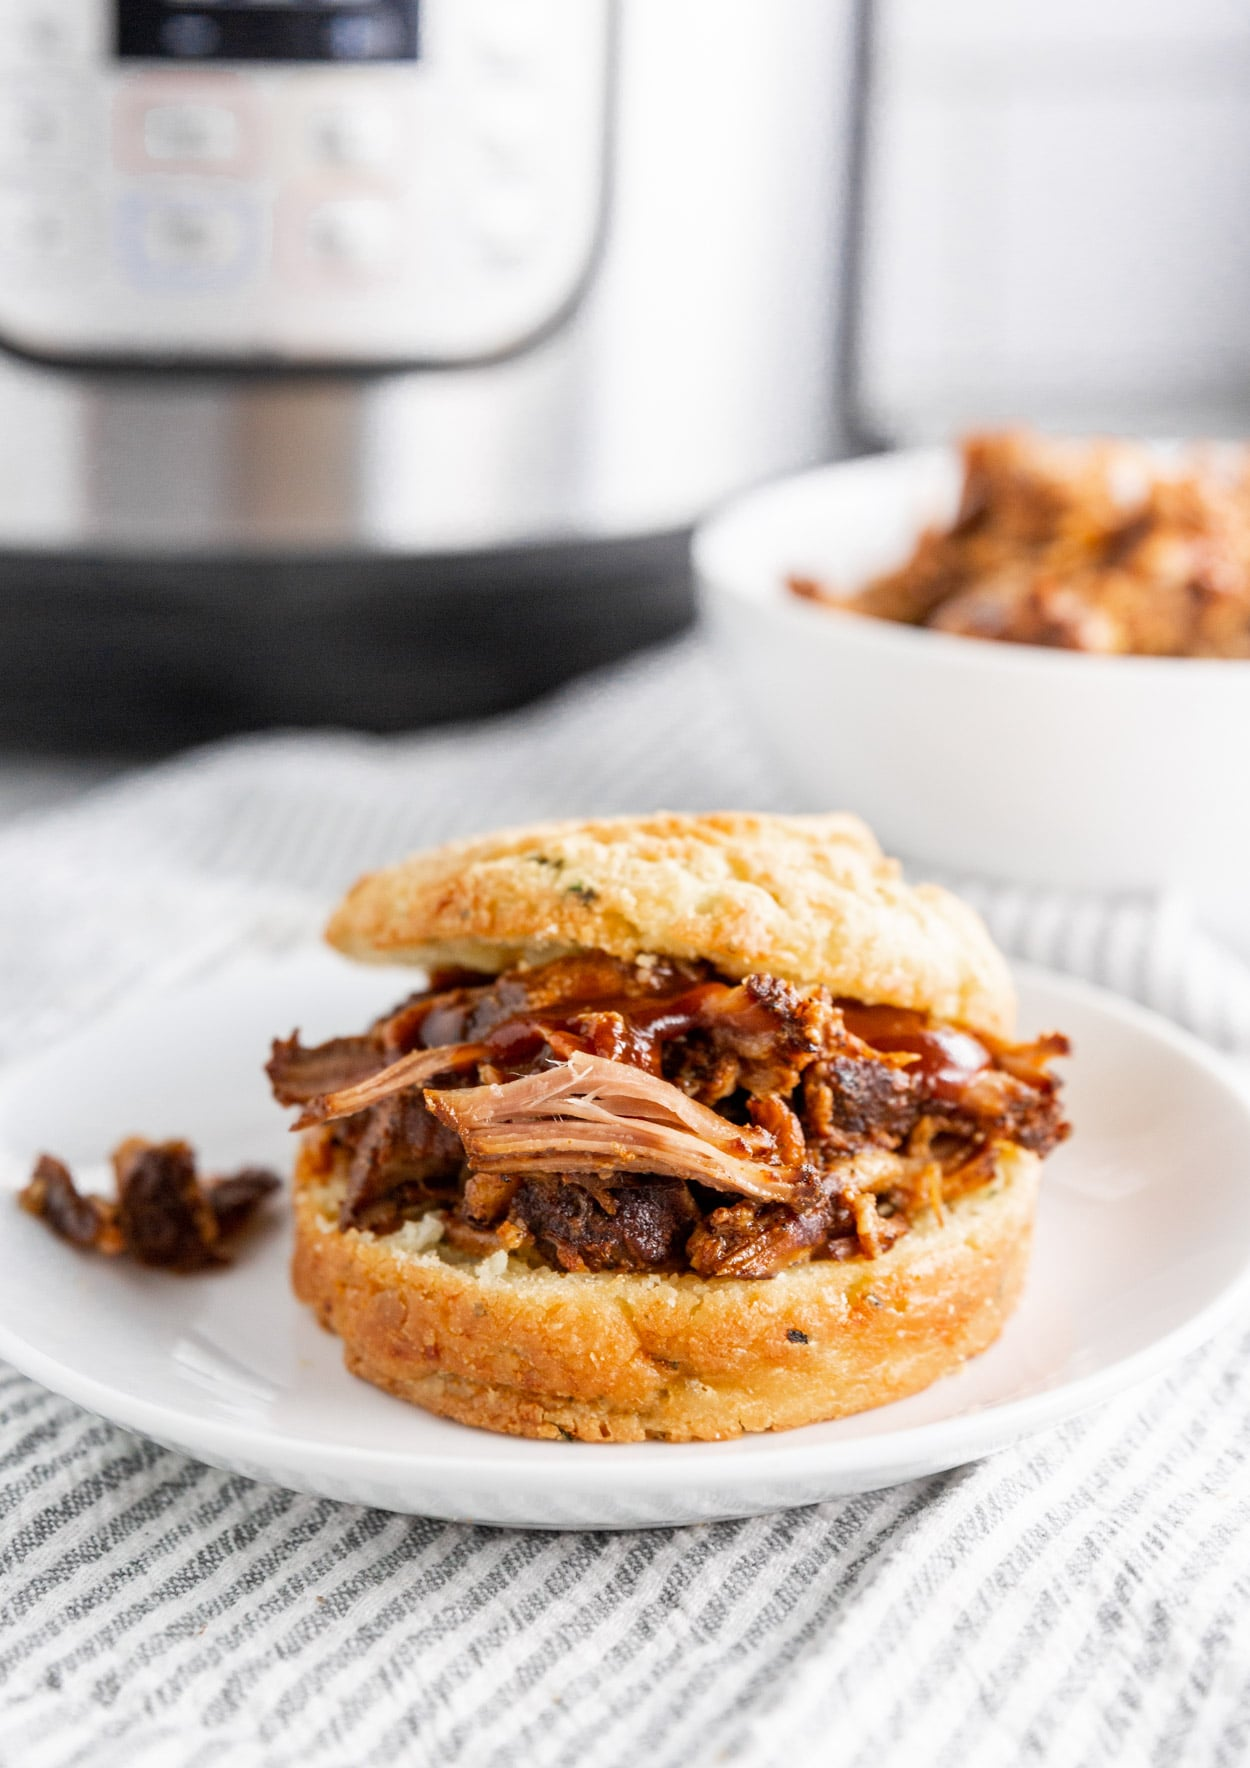 A photo of a BBQ Pulled pork sandwich with BBQ sauce and an Instant Pot in the background.